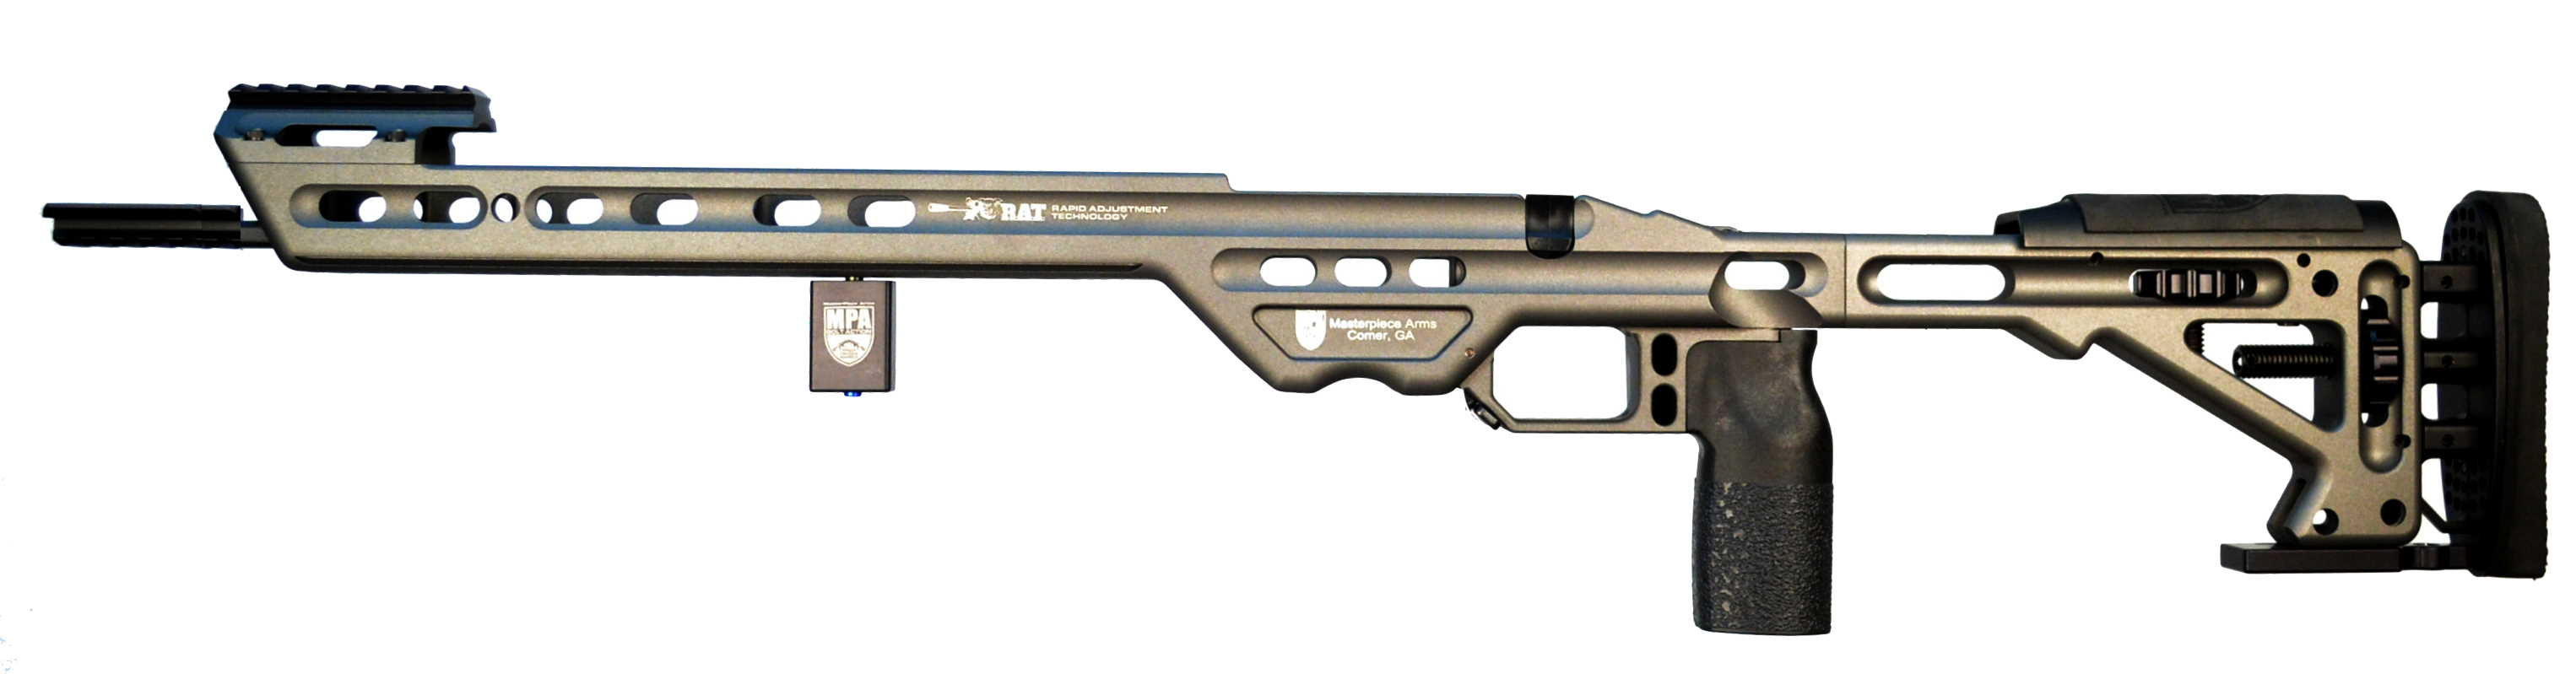 MasterPiece Arms' BA Competition Chassis Surveyed as #1 Most Popular Rifle Chassis/Stock by the Precision Rifle Blog (PRB)